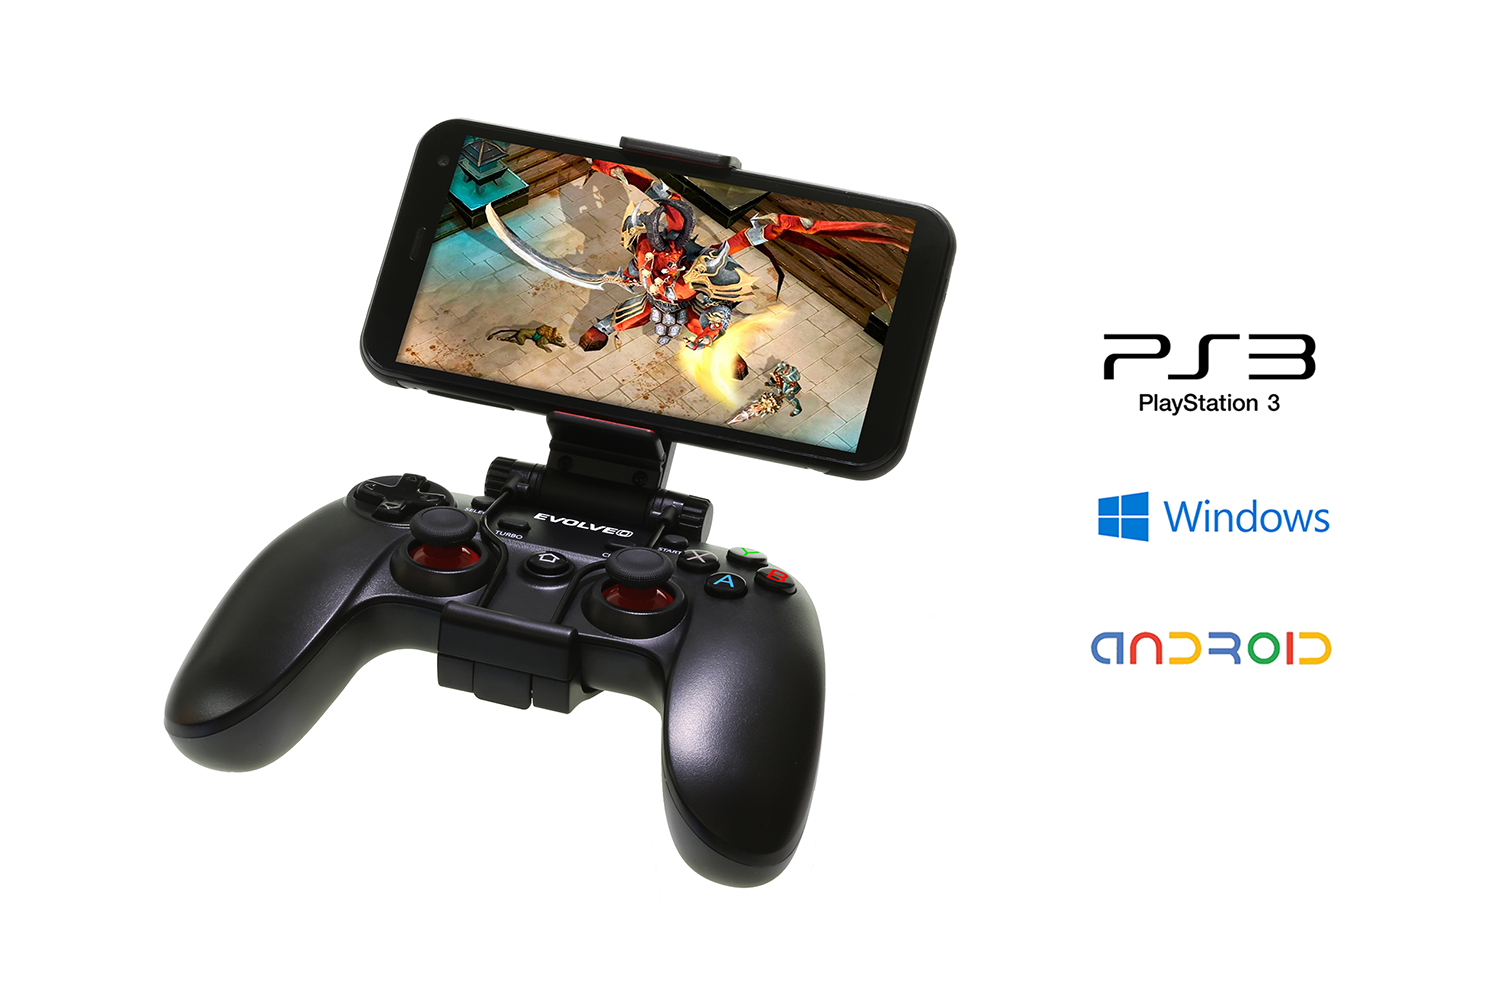 Bezdrátový gamepad EVOLVEO Fighter F1, pro PC, PlayStation 3, Android box/smartphone